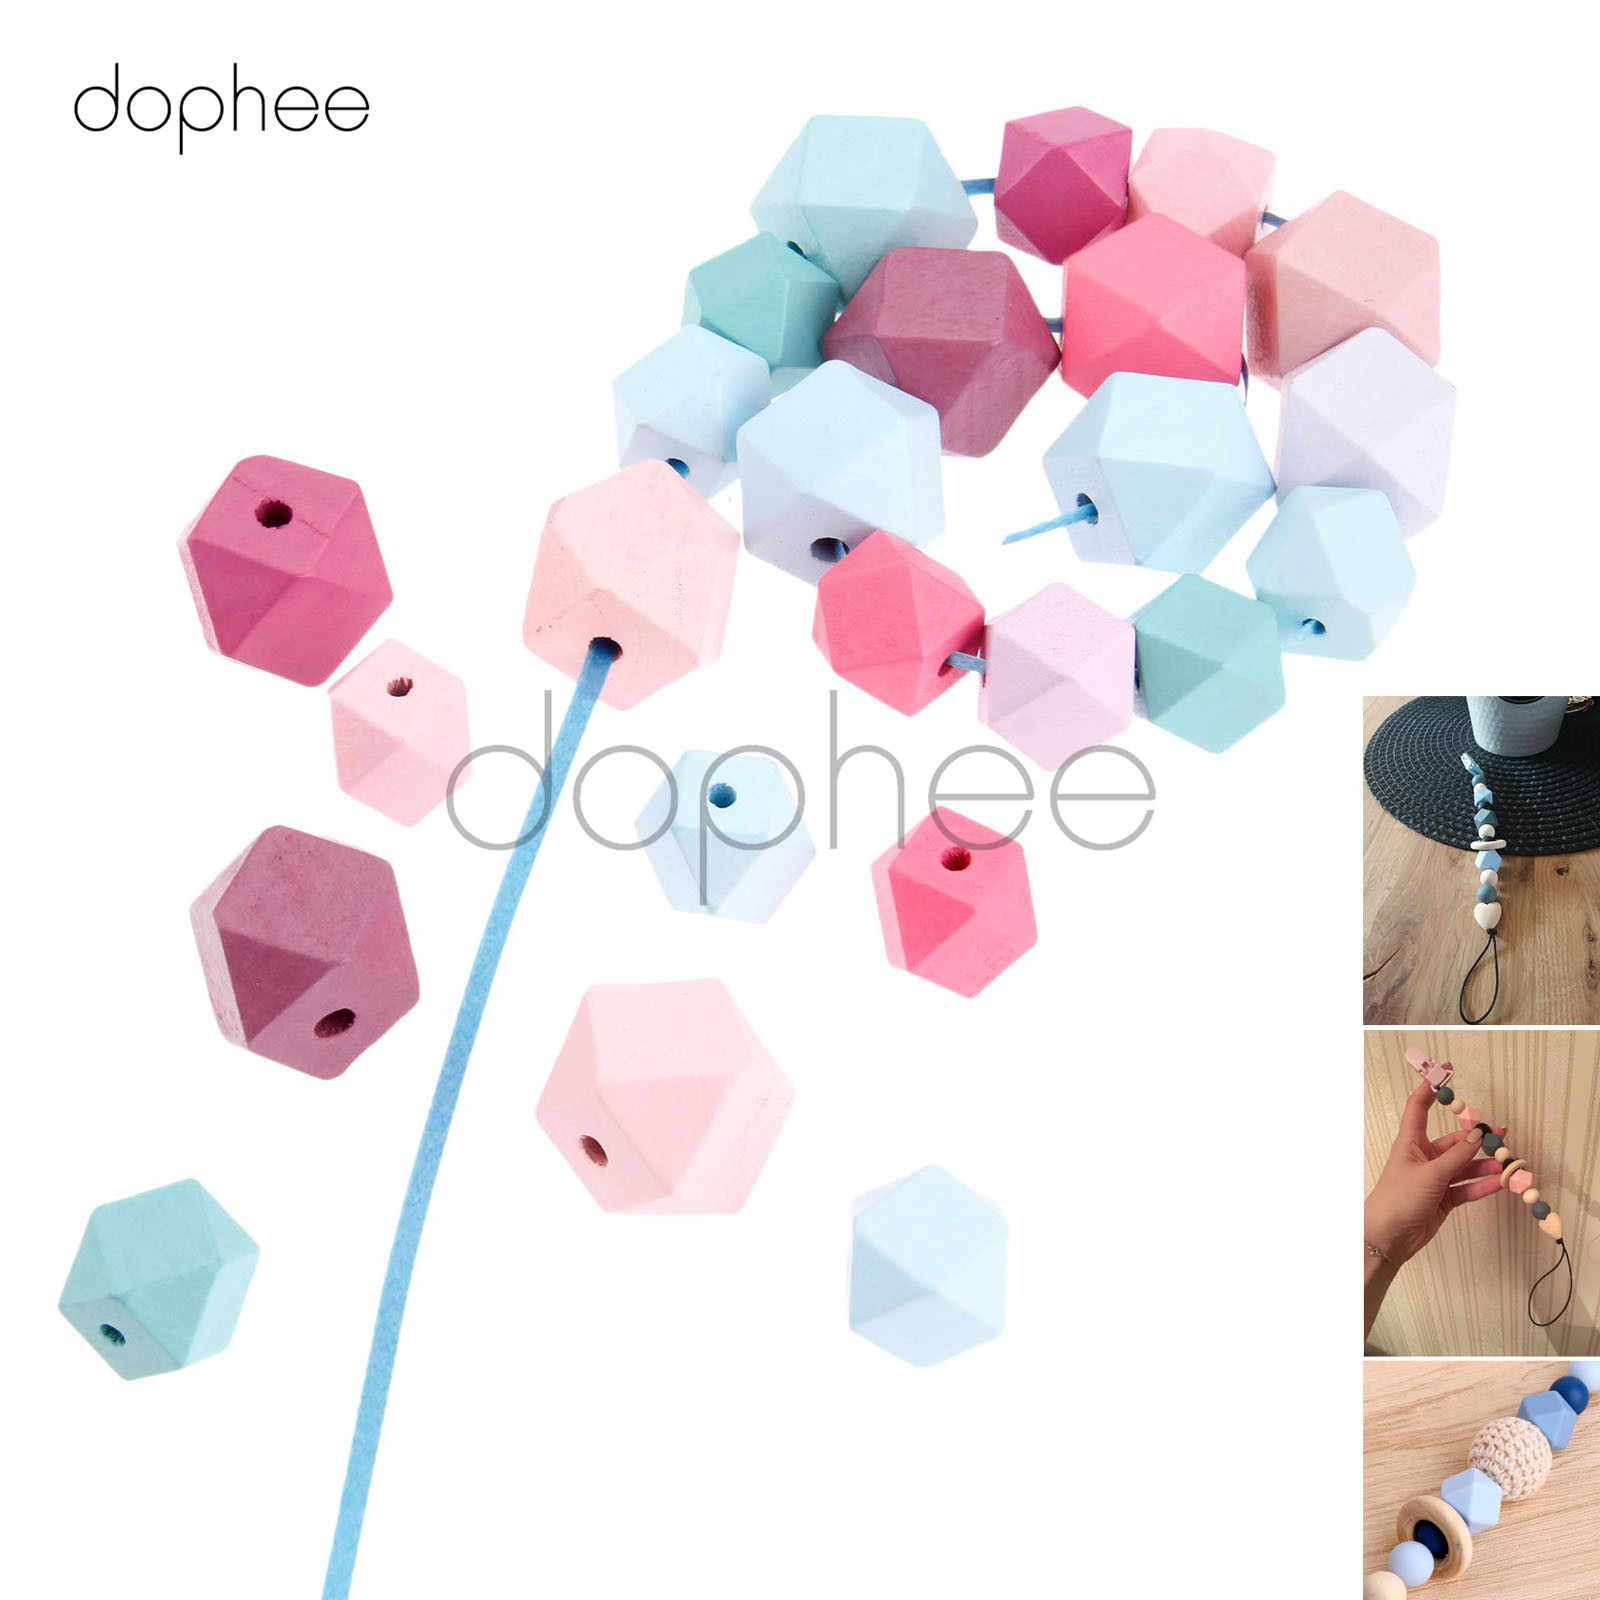 dophee 20pcs 20mm Mixed Color Crown Wood Beads Unfinished Natural Geometric Bead For Jewelry Making Garment Decoration Kids Toy